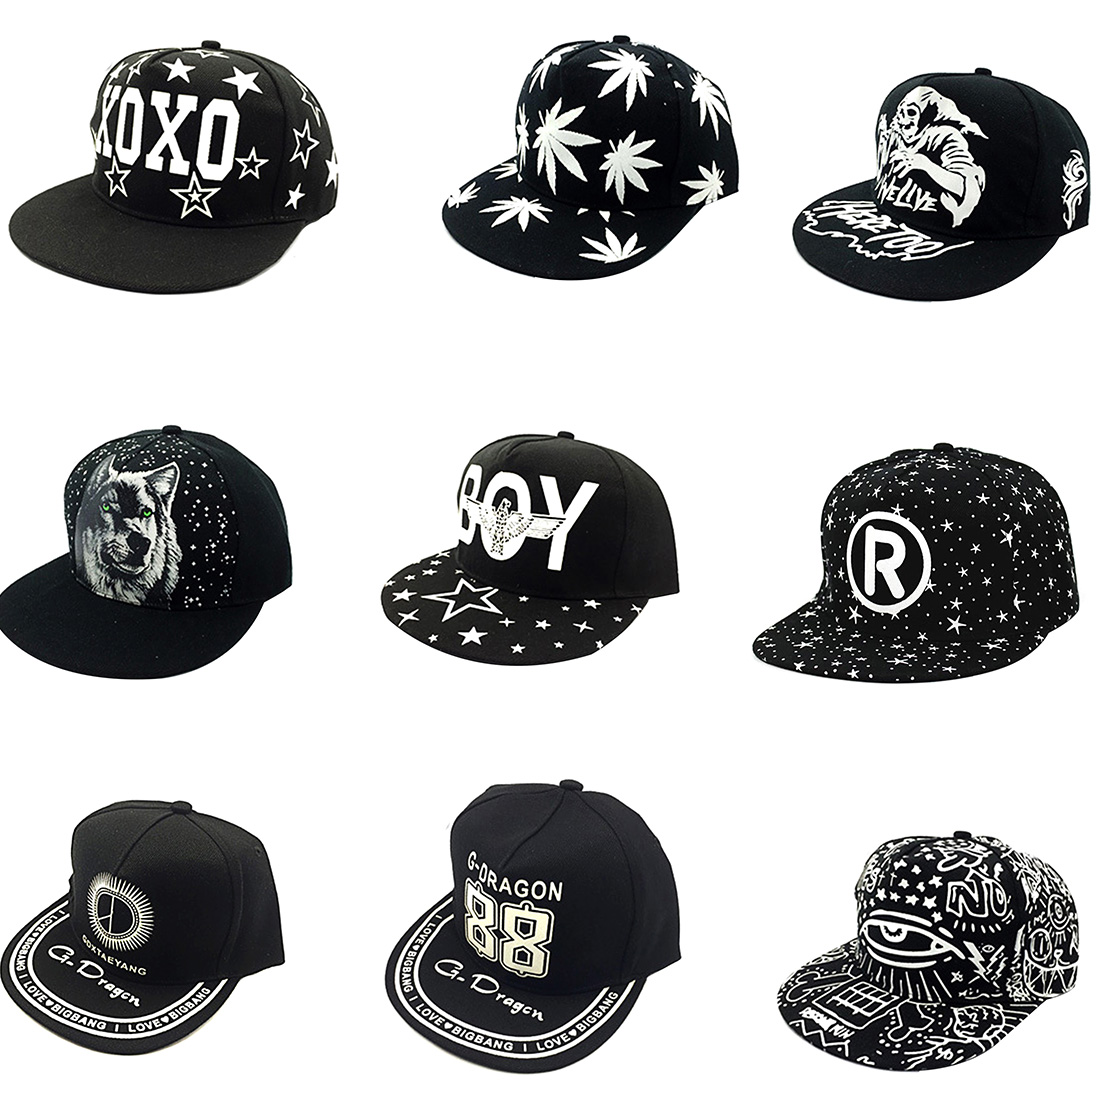 2017 Fashion Adjustable bones shape shiny hat letters Snapback hats man women hip hop street tide style baseball cap